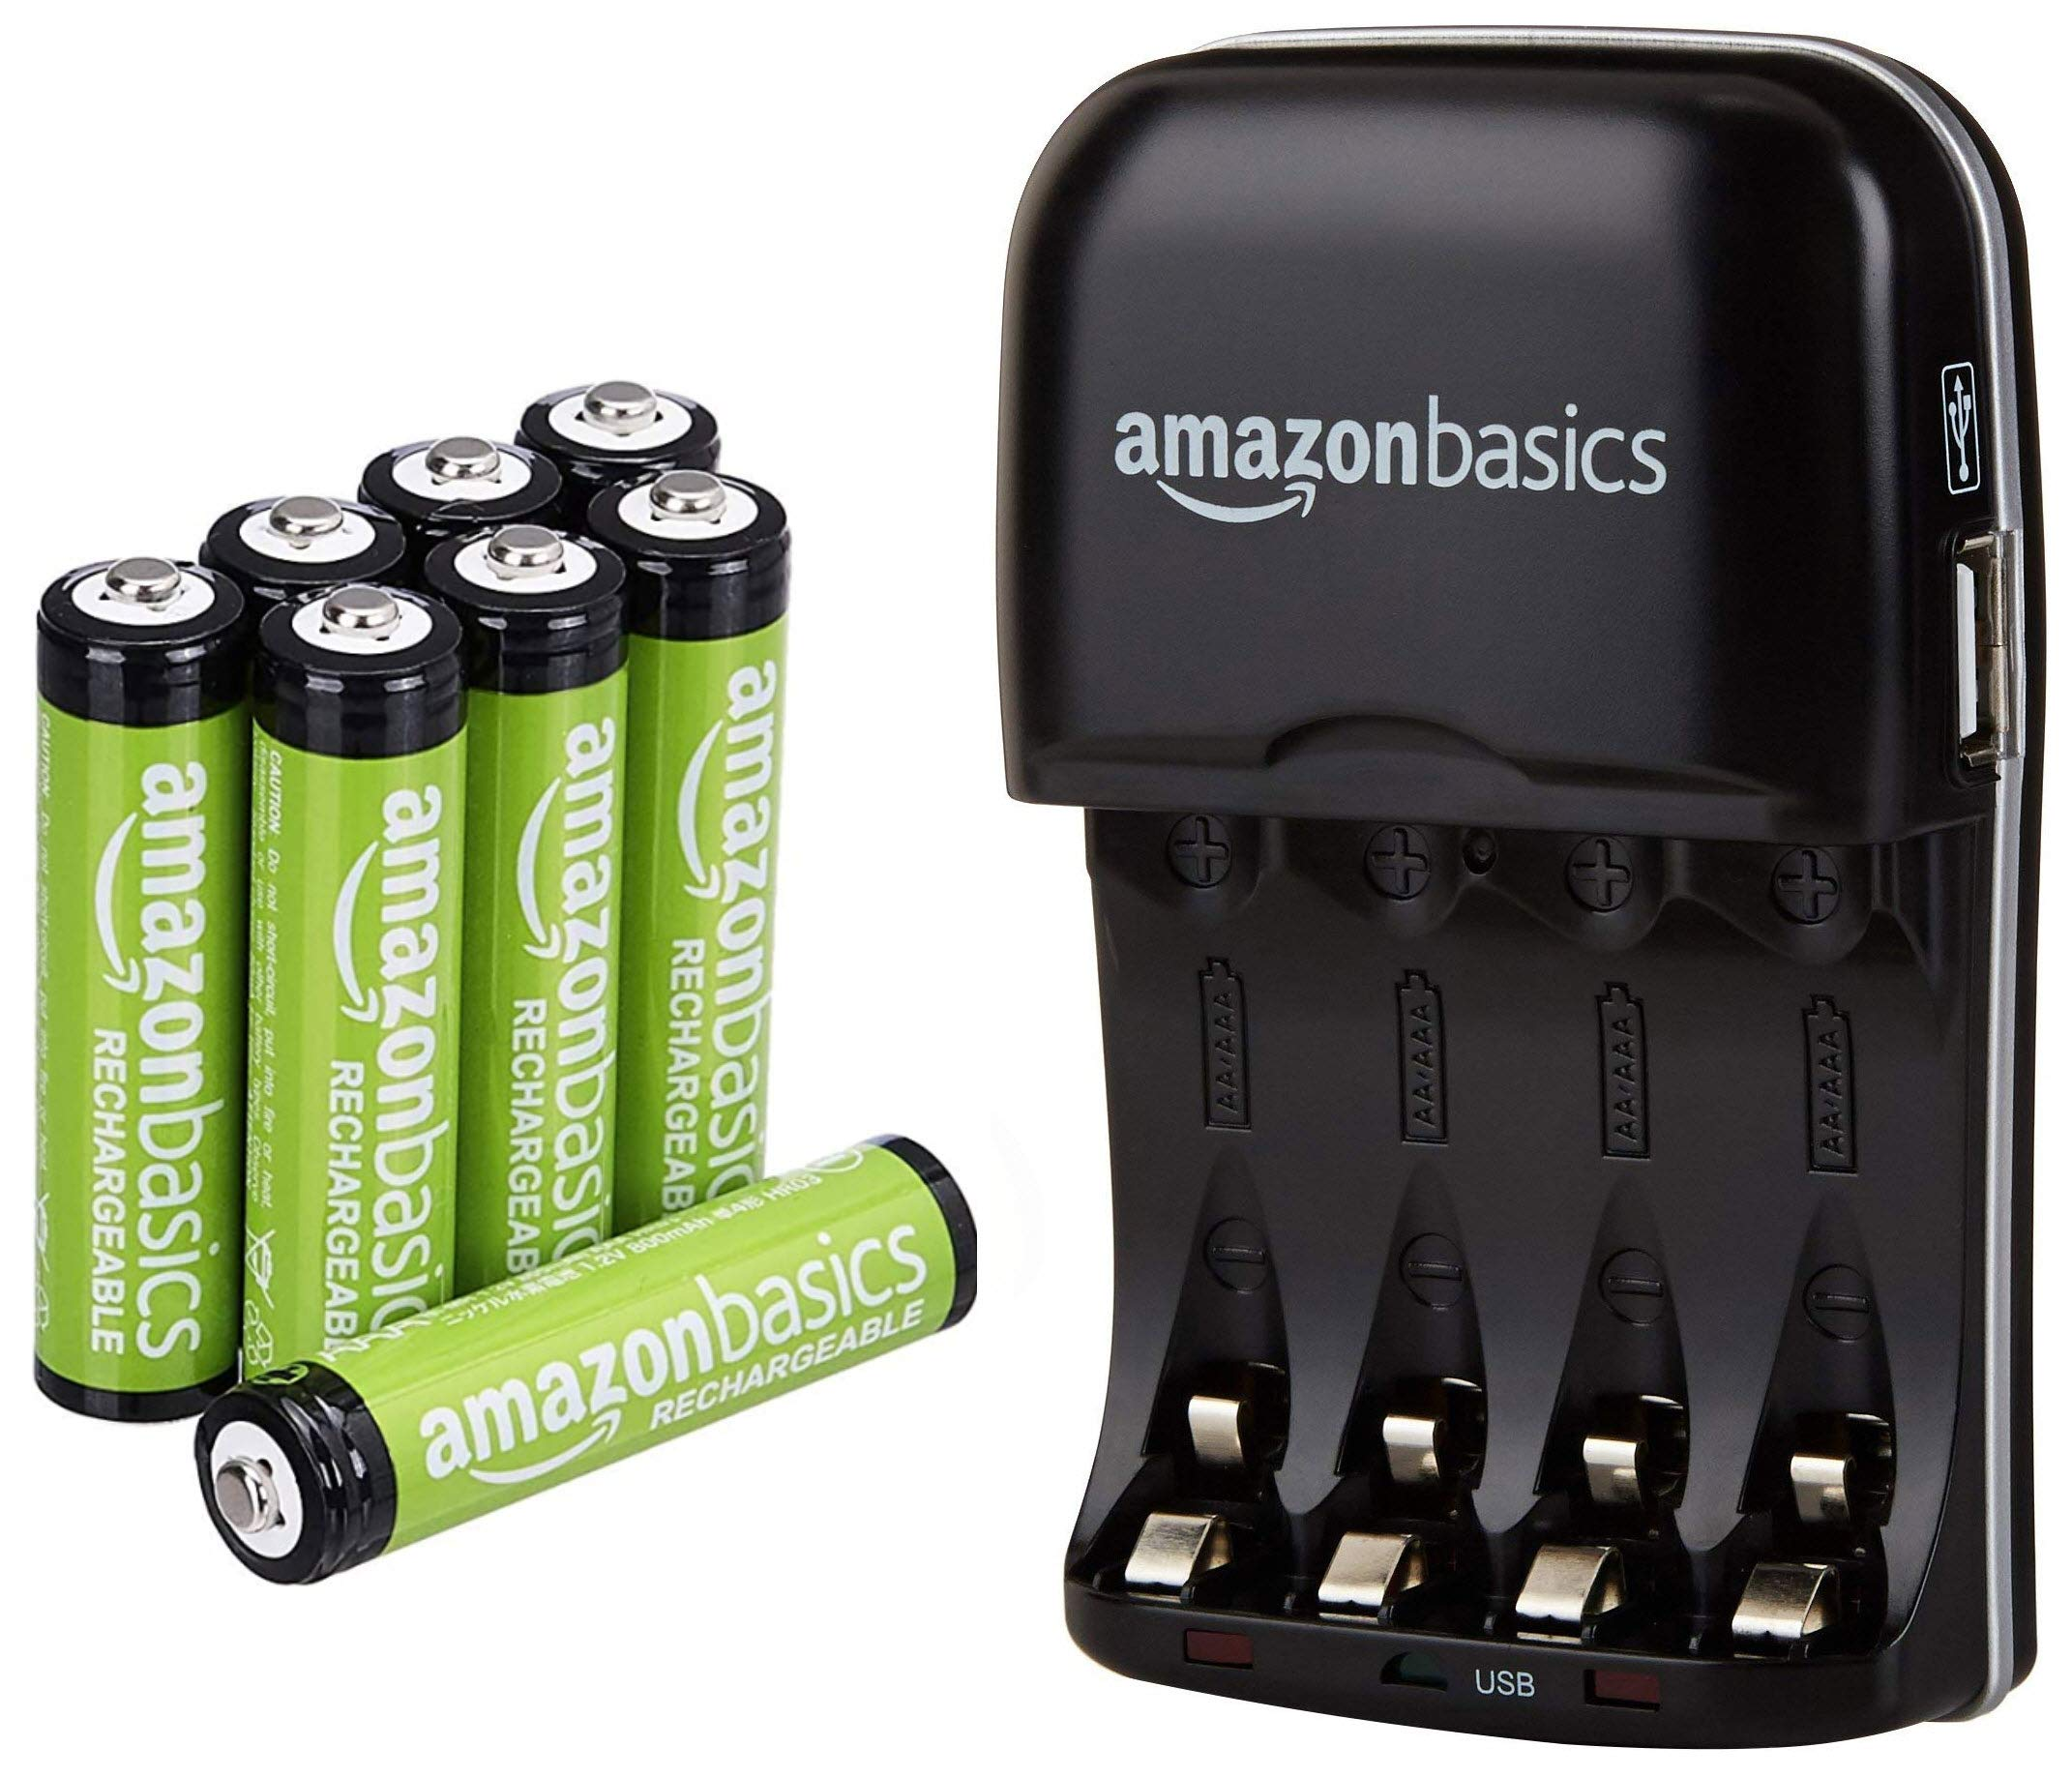 AmazonBasics AAA Rechargeable Batteries (8-Pack) and Ni-MH AA & AAA Battery Charger With USB Port Set